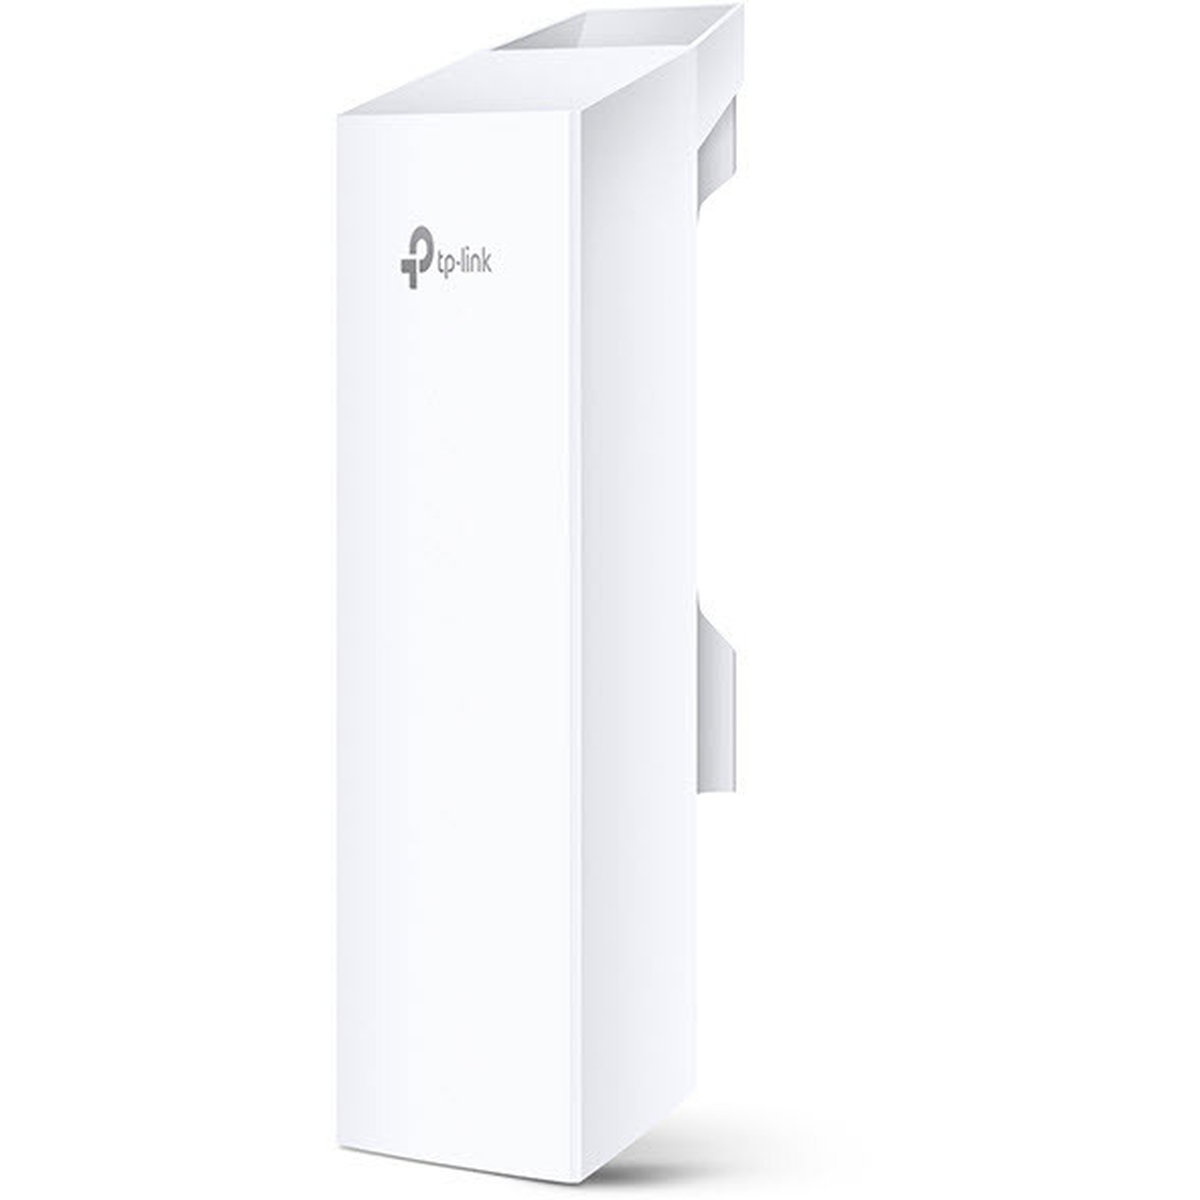 TP-Link CPE210 2,4GHz 300MBit 9dBi Outdoor Accesspoint